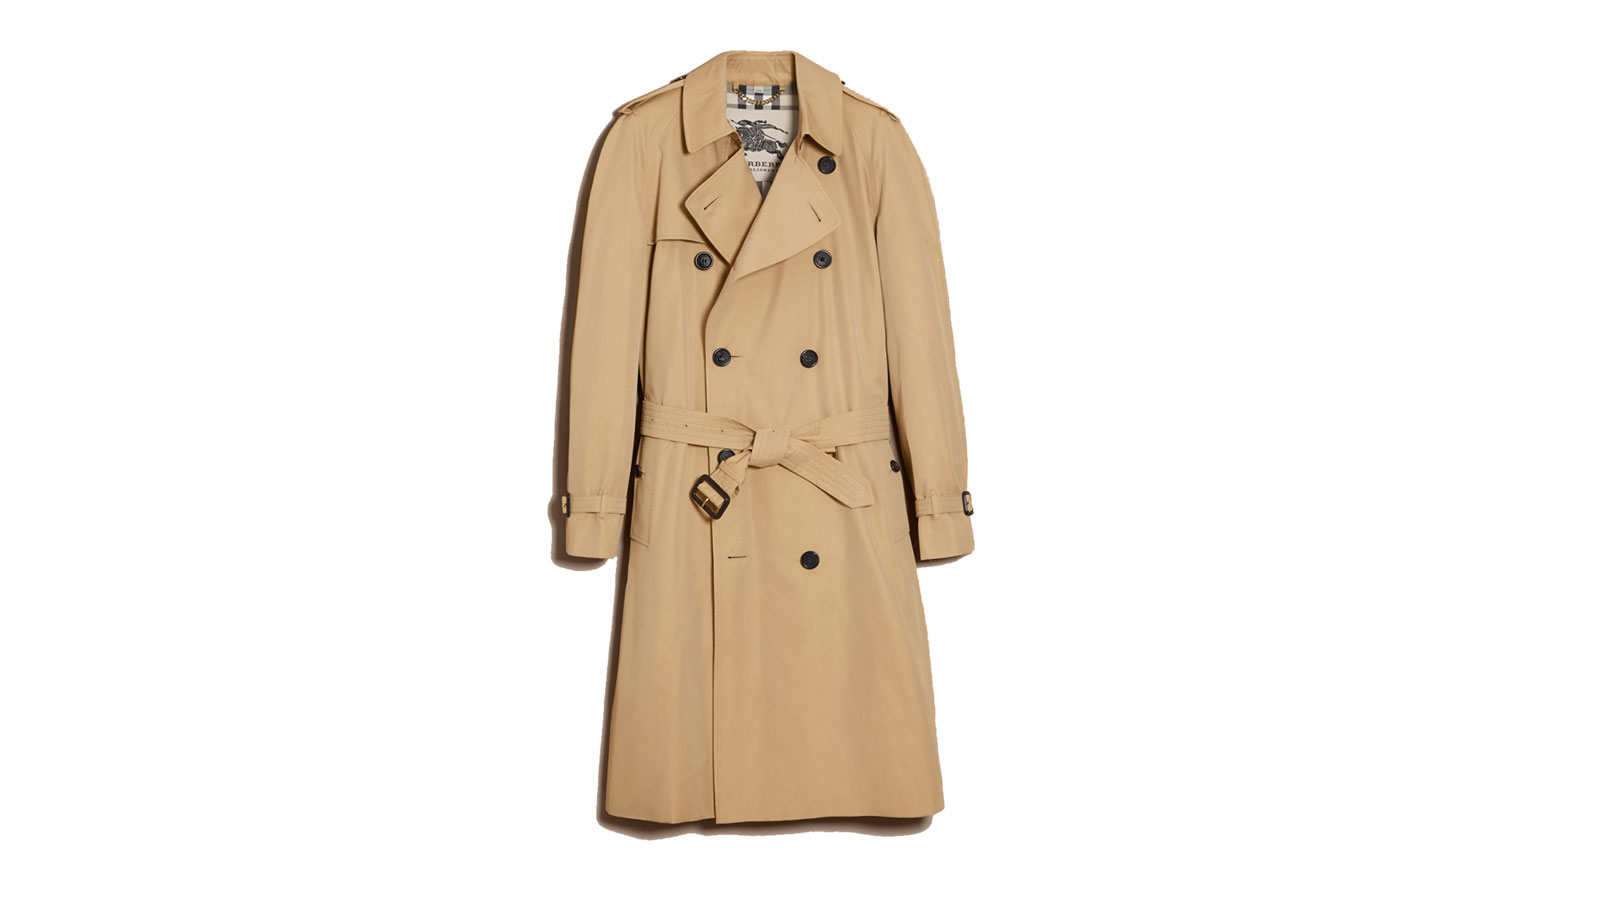 Burberry Mens Westminster Trench Coat | The Best Men's Trench Coats